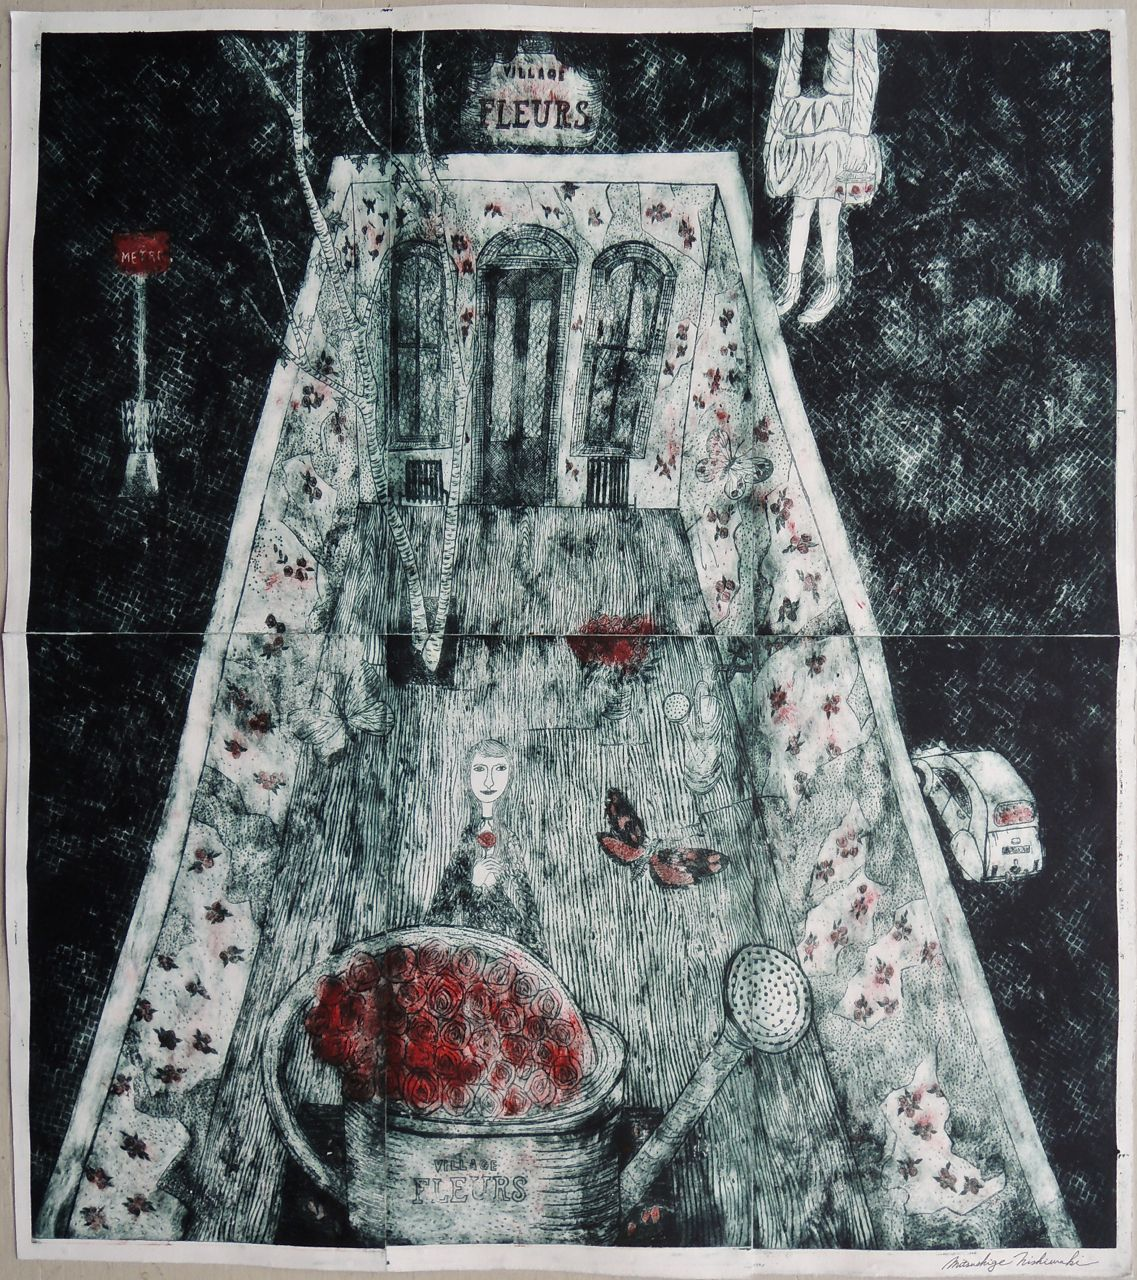 "Artist: Mitsushige Nishiwaki  Name: Village Fleurs  Size: 33.75""x30""  Price:  Inquire   Method: etching  Condition: signed print"